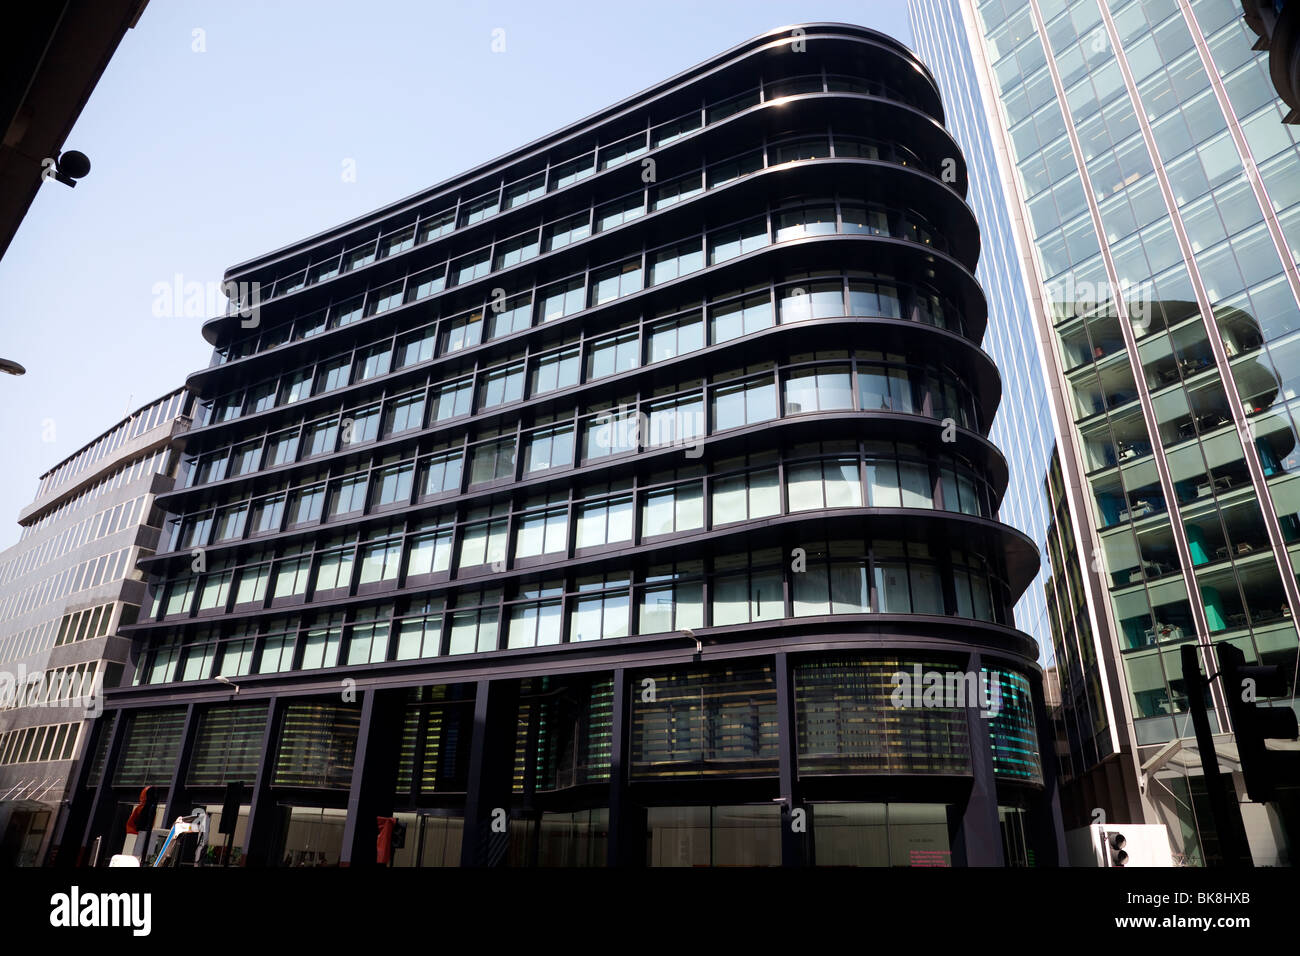 60 Threadneedle Street, London, UK Imagen De Stock